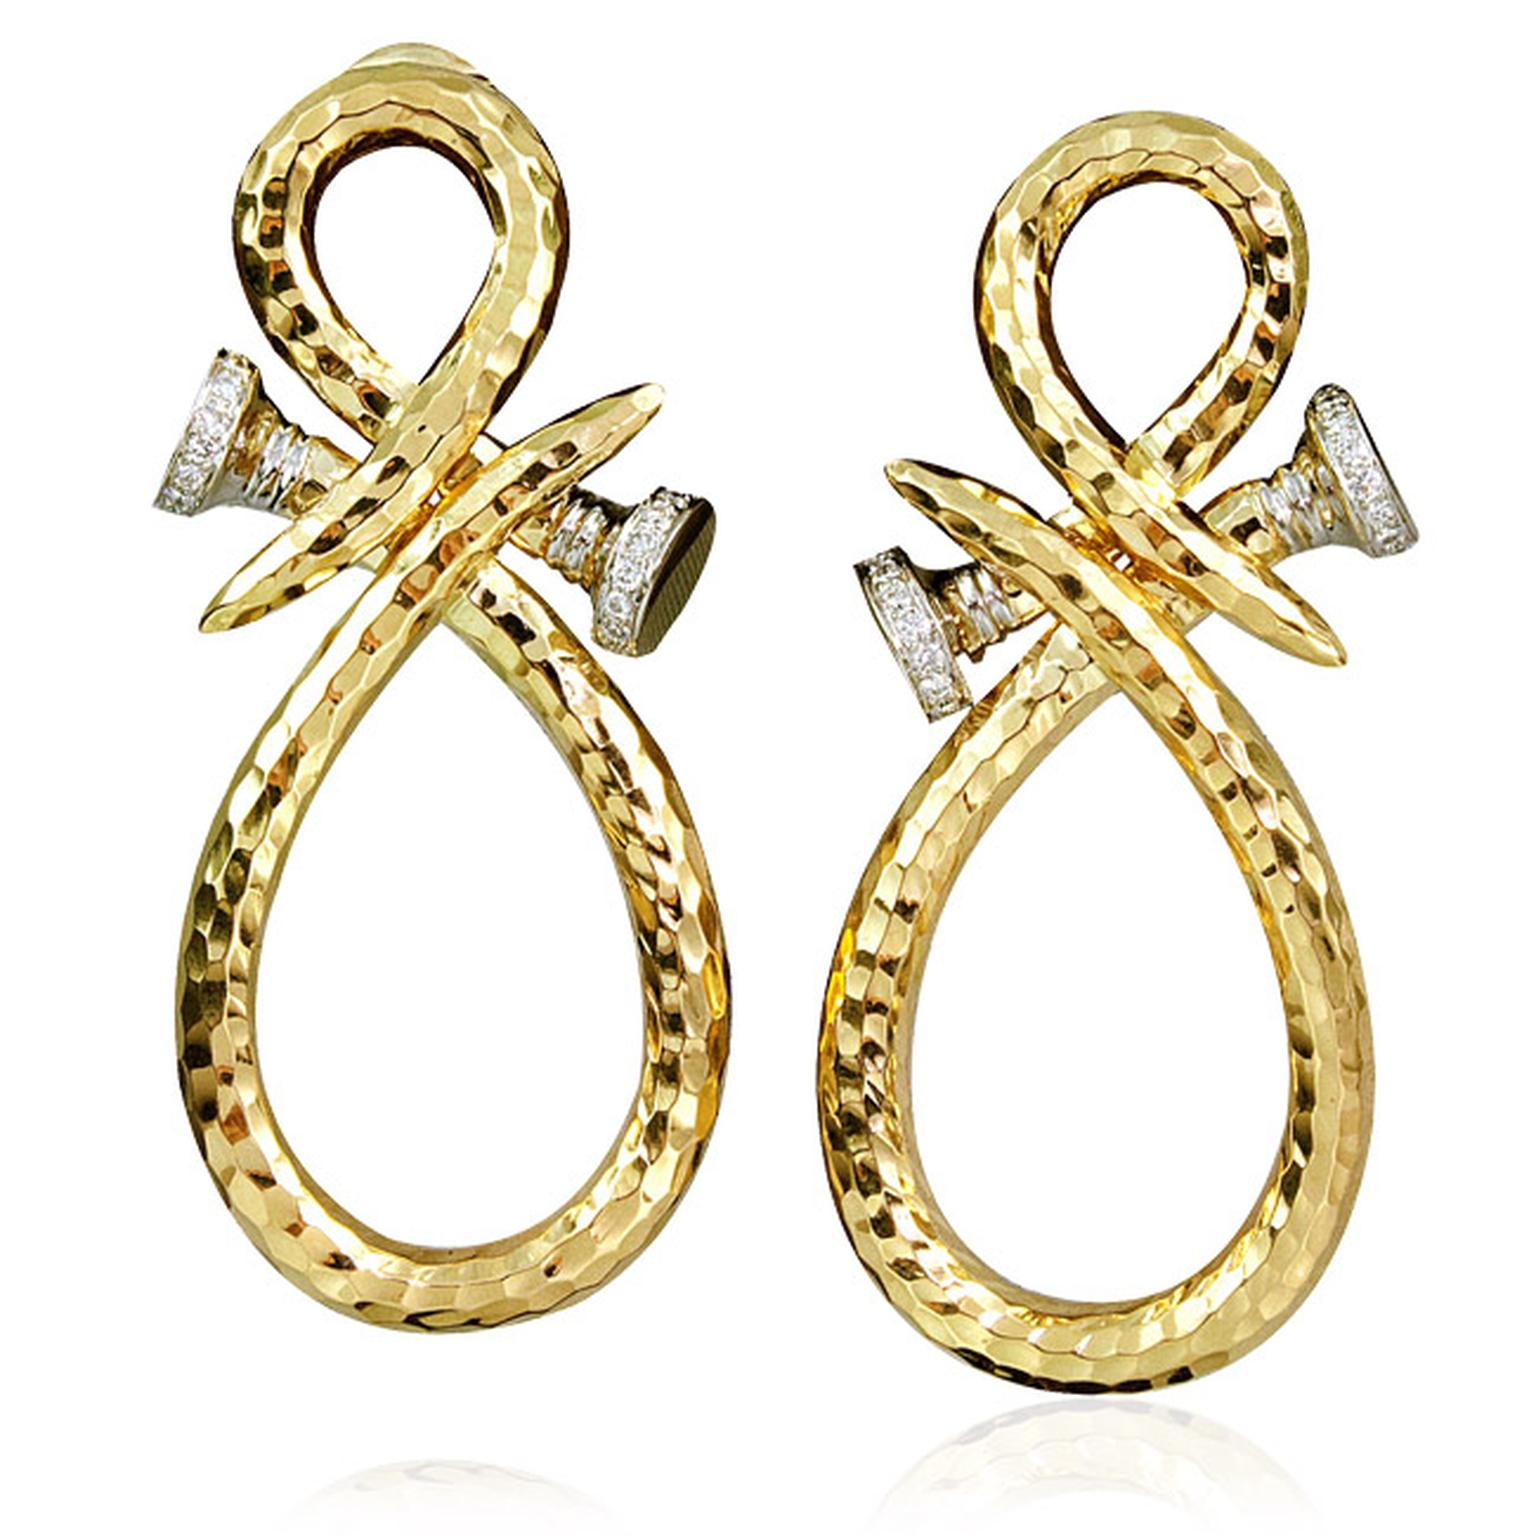 David-Webb-Curved-Earrings-main